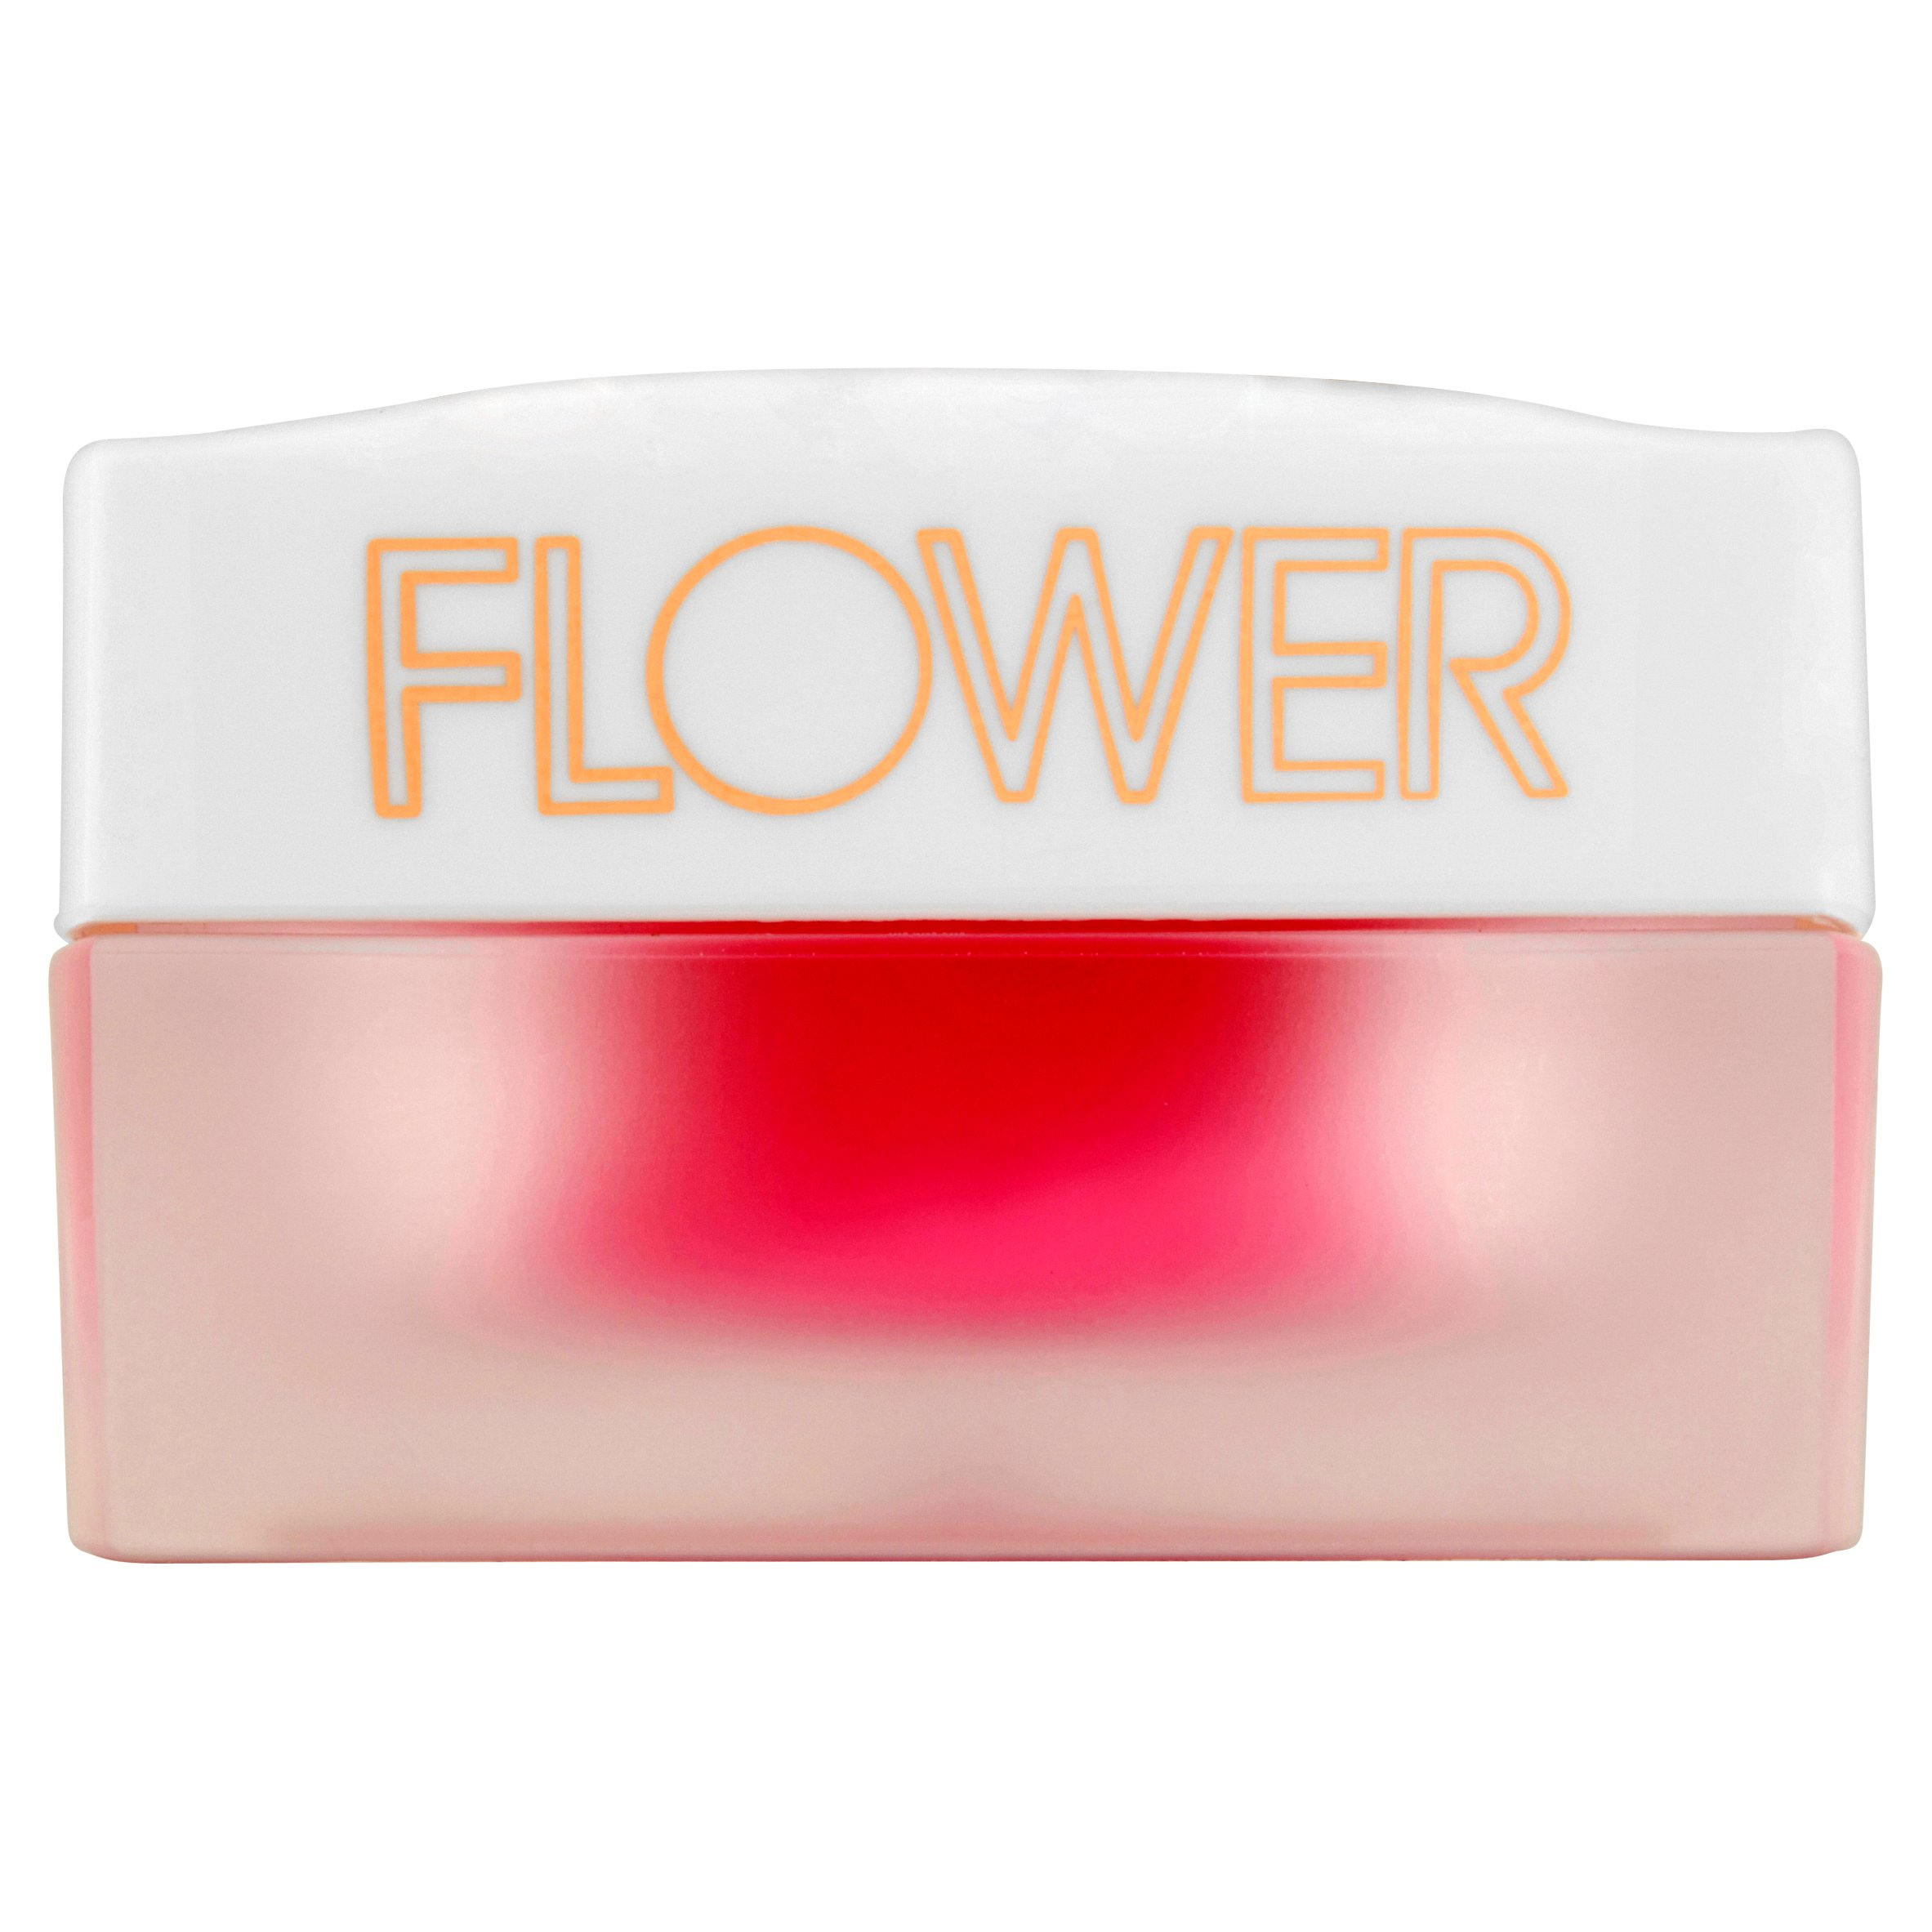 Flower TT2 Tickled Pink Transforming Touch Powder-to Crème Blush, 0.20 oz